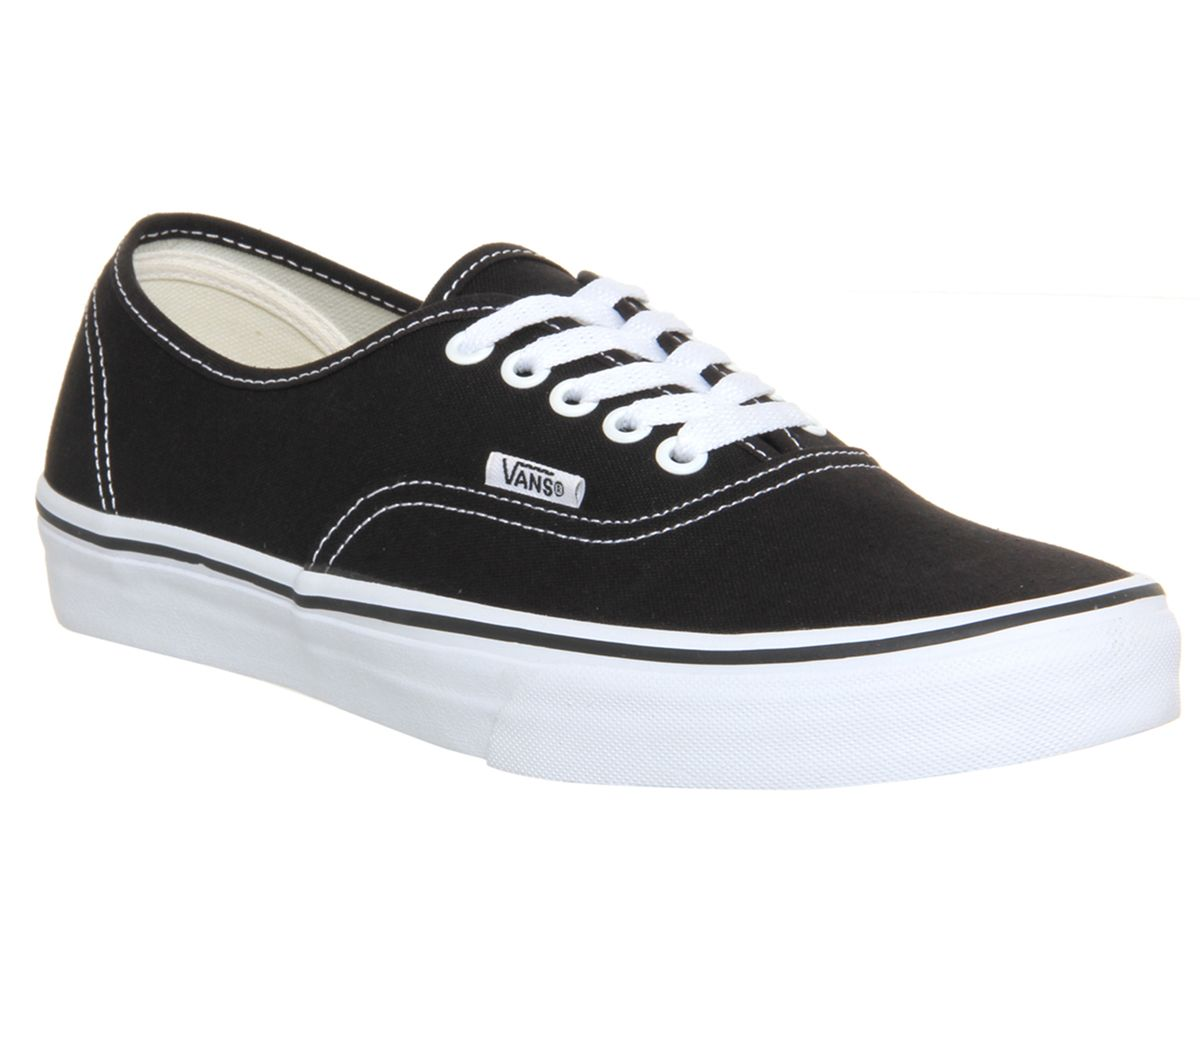 60a7a5f10031 Vans Authentic Black White - Unisex Sports